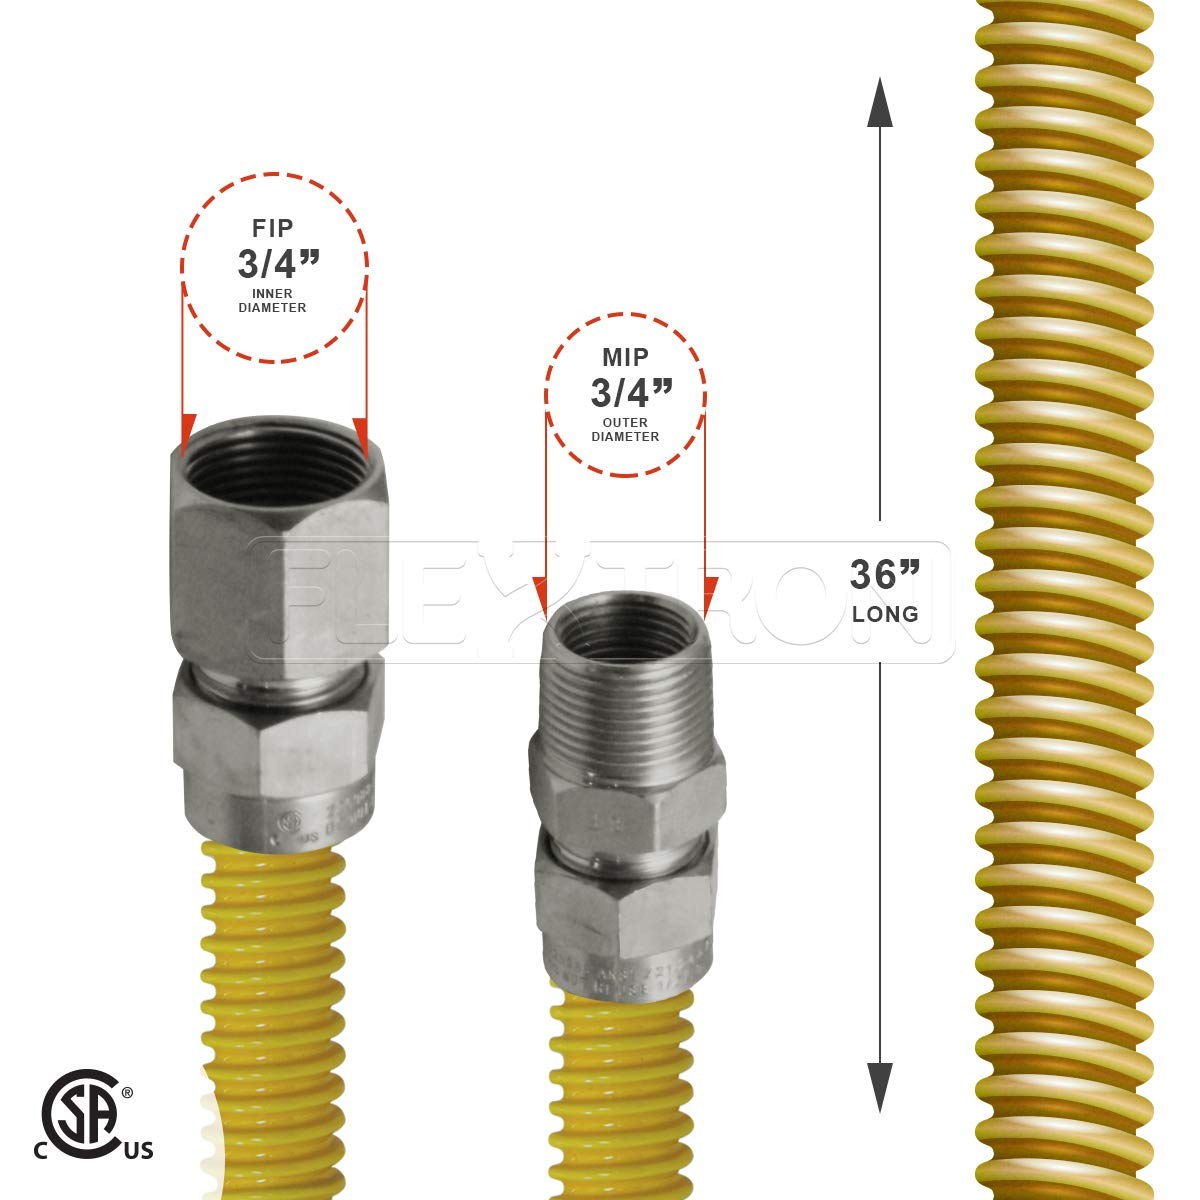 Flextron FTGC-YC12-12 10 Flexible Epoxy Coated Gas Line Connector with 5//8 Outer Diameter and Nut Fittings Yellow//Stainless Steel Everflow Supplies